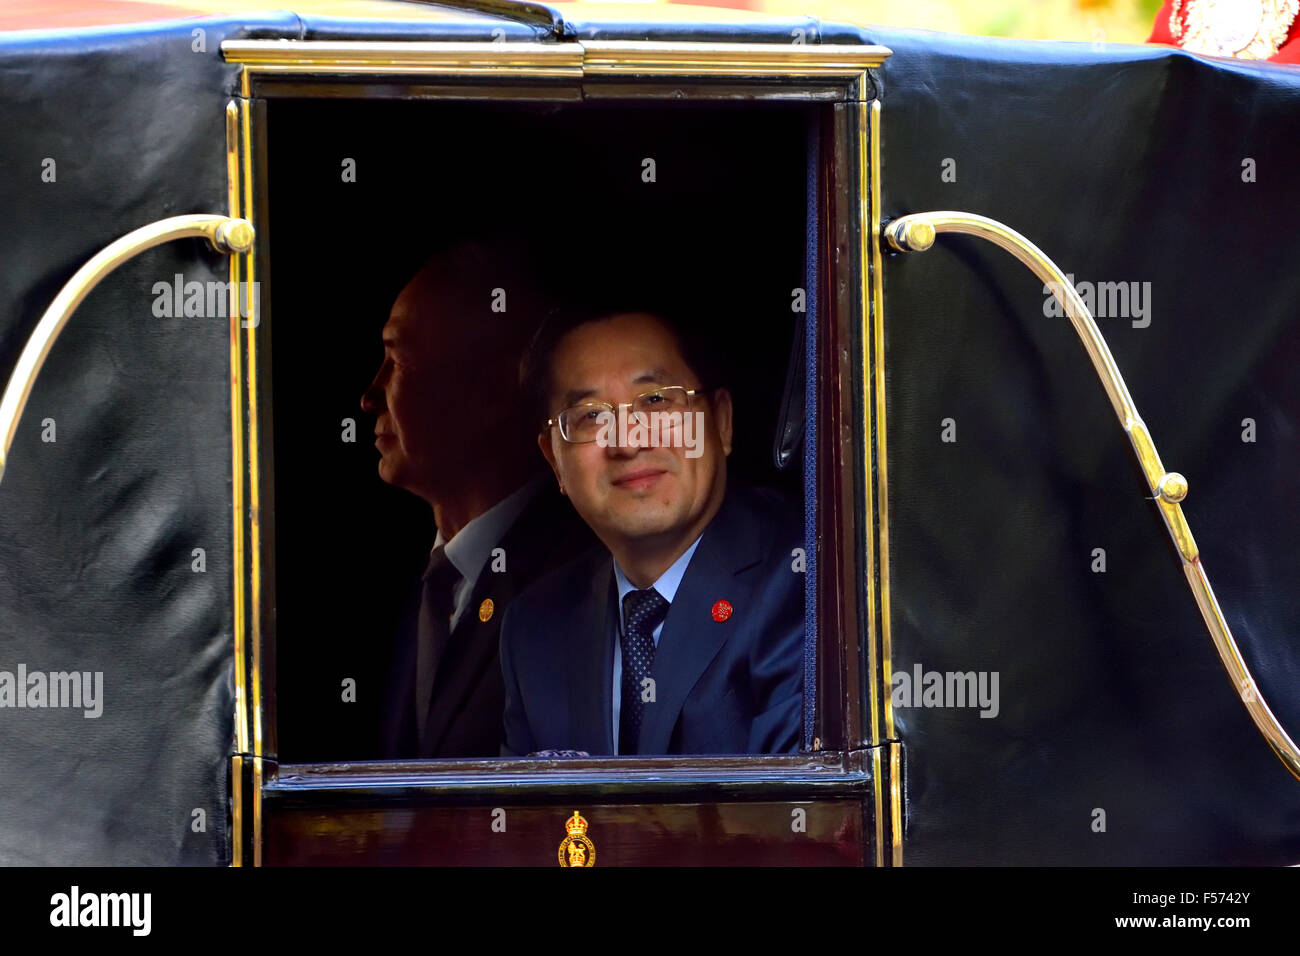 London Oct 20th. Chinese officials in a horse-drawn carriage in the Mall as Chinese President Xi Jinping starts - Stock Image